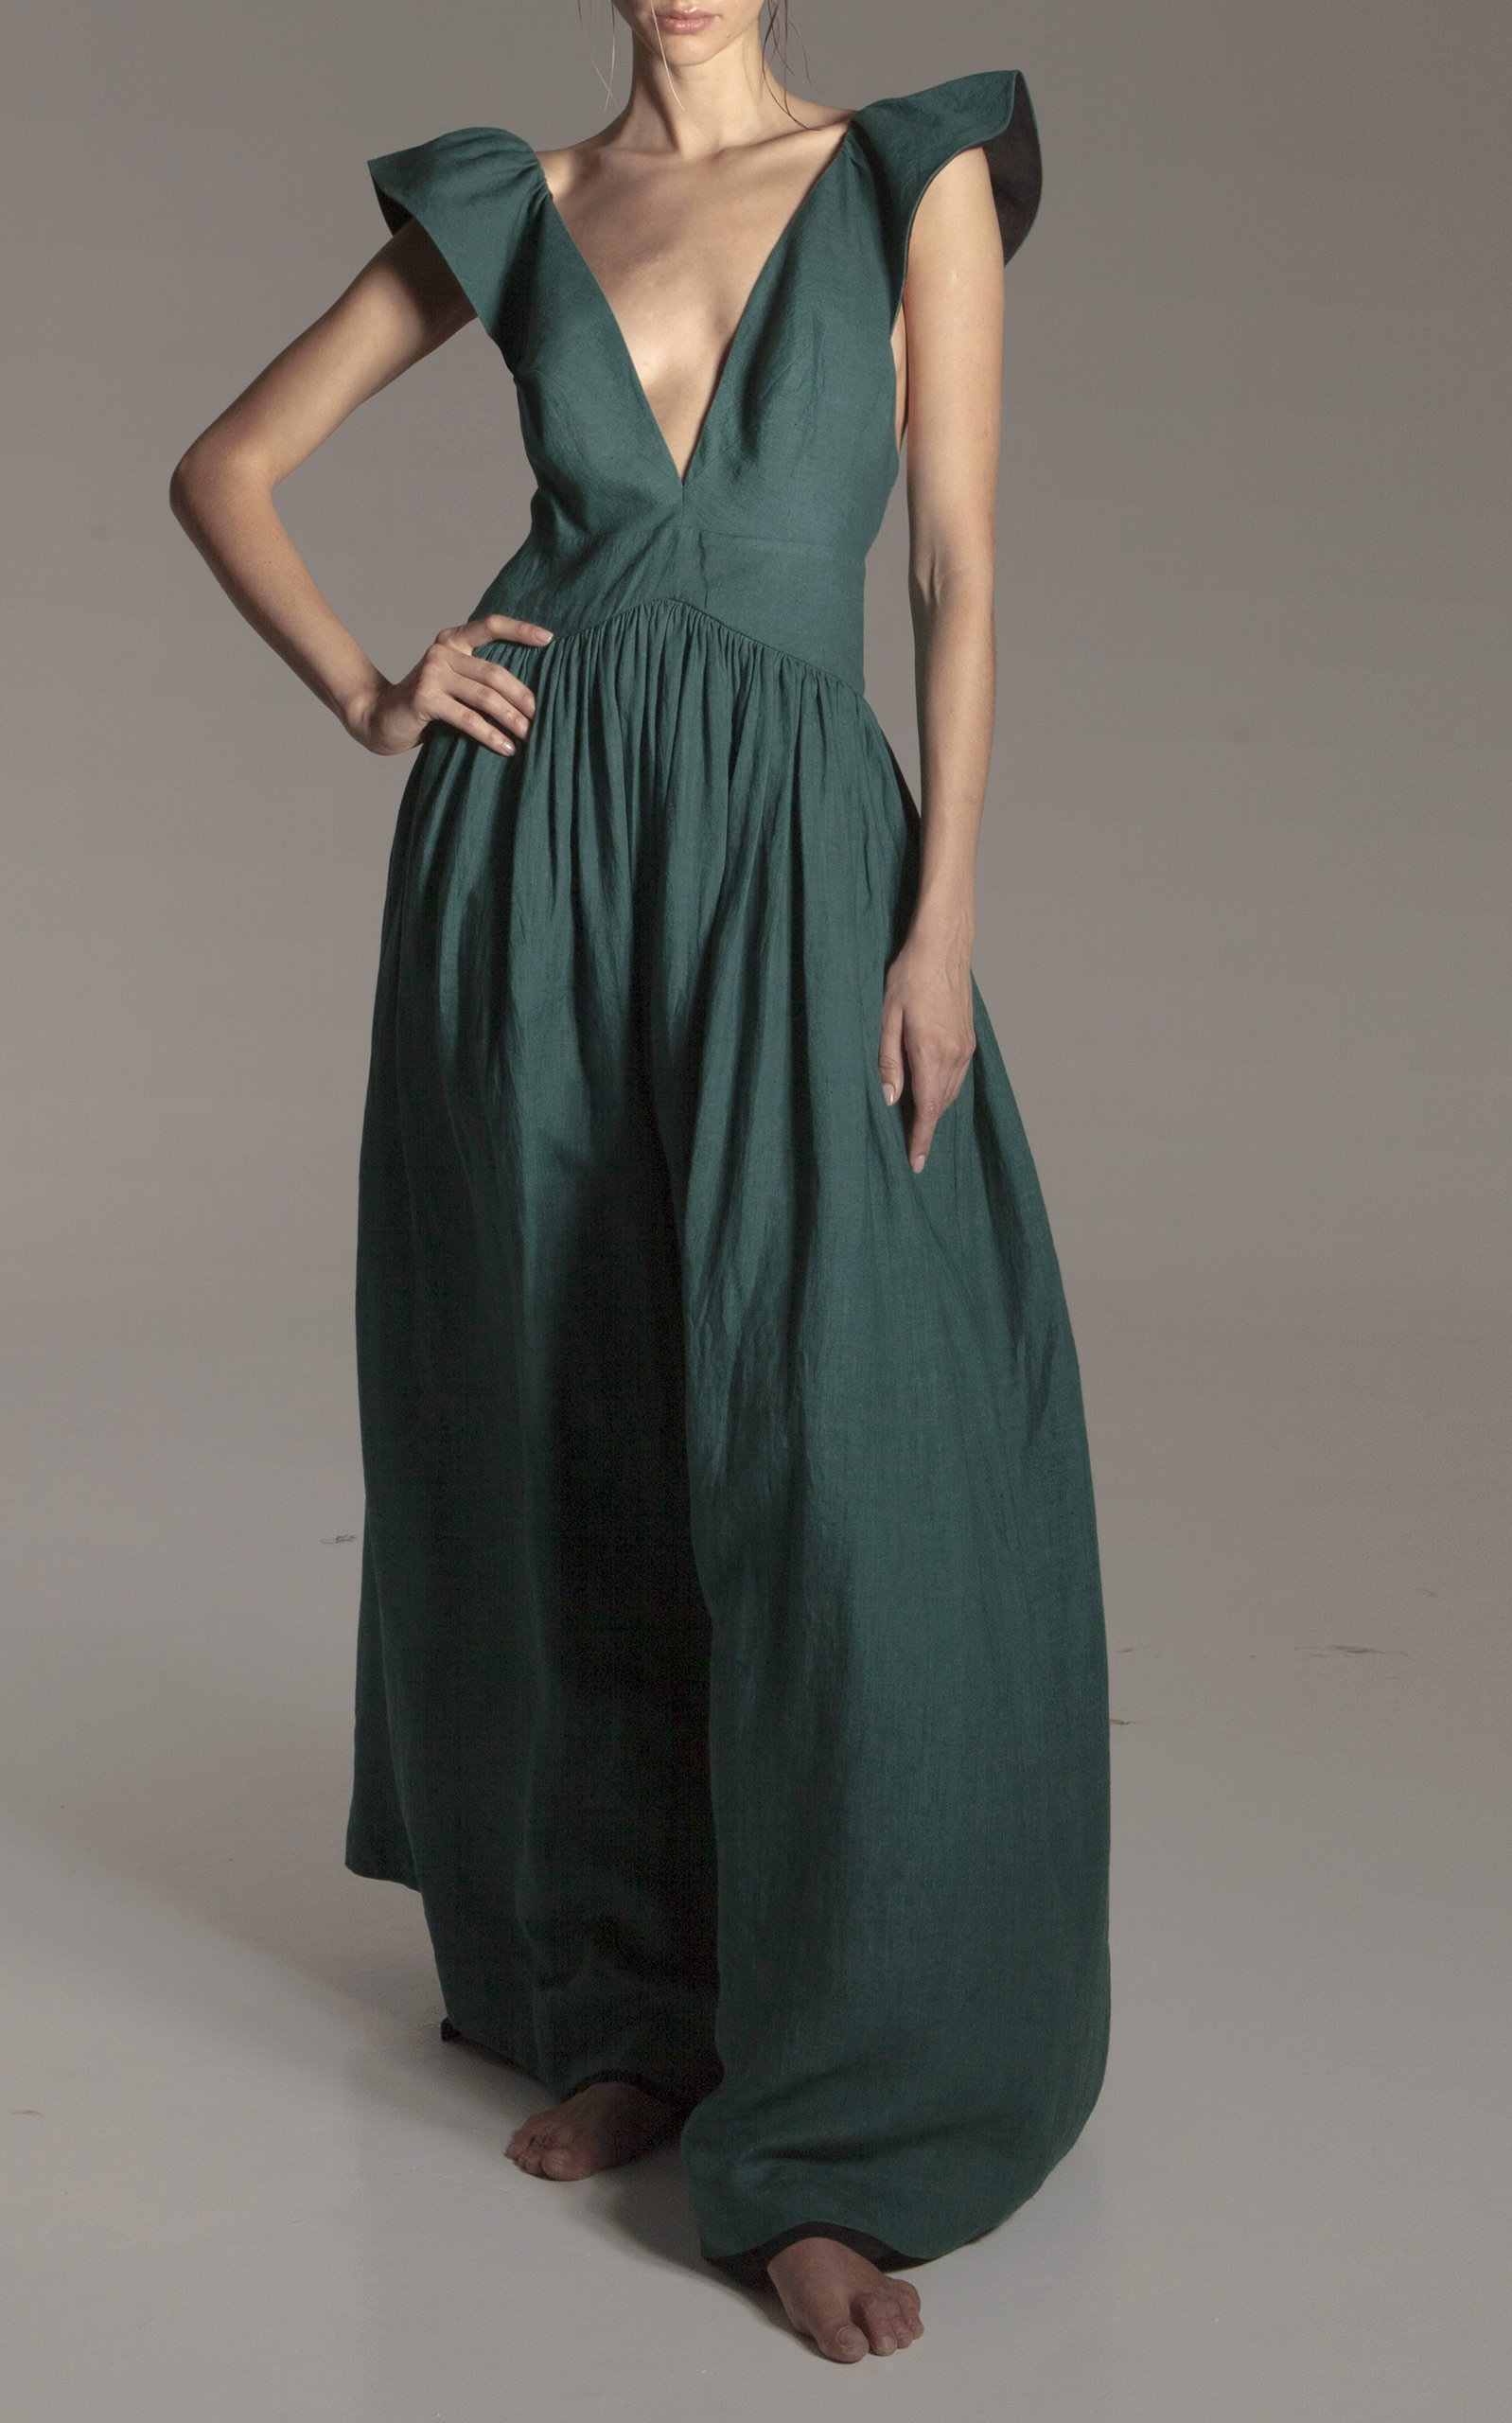 Kalita - Destination Wear - Persephone Linen Day Dress